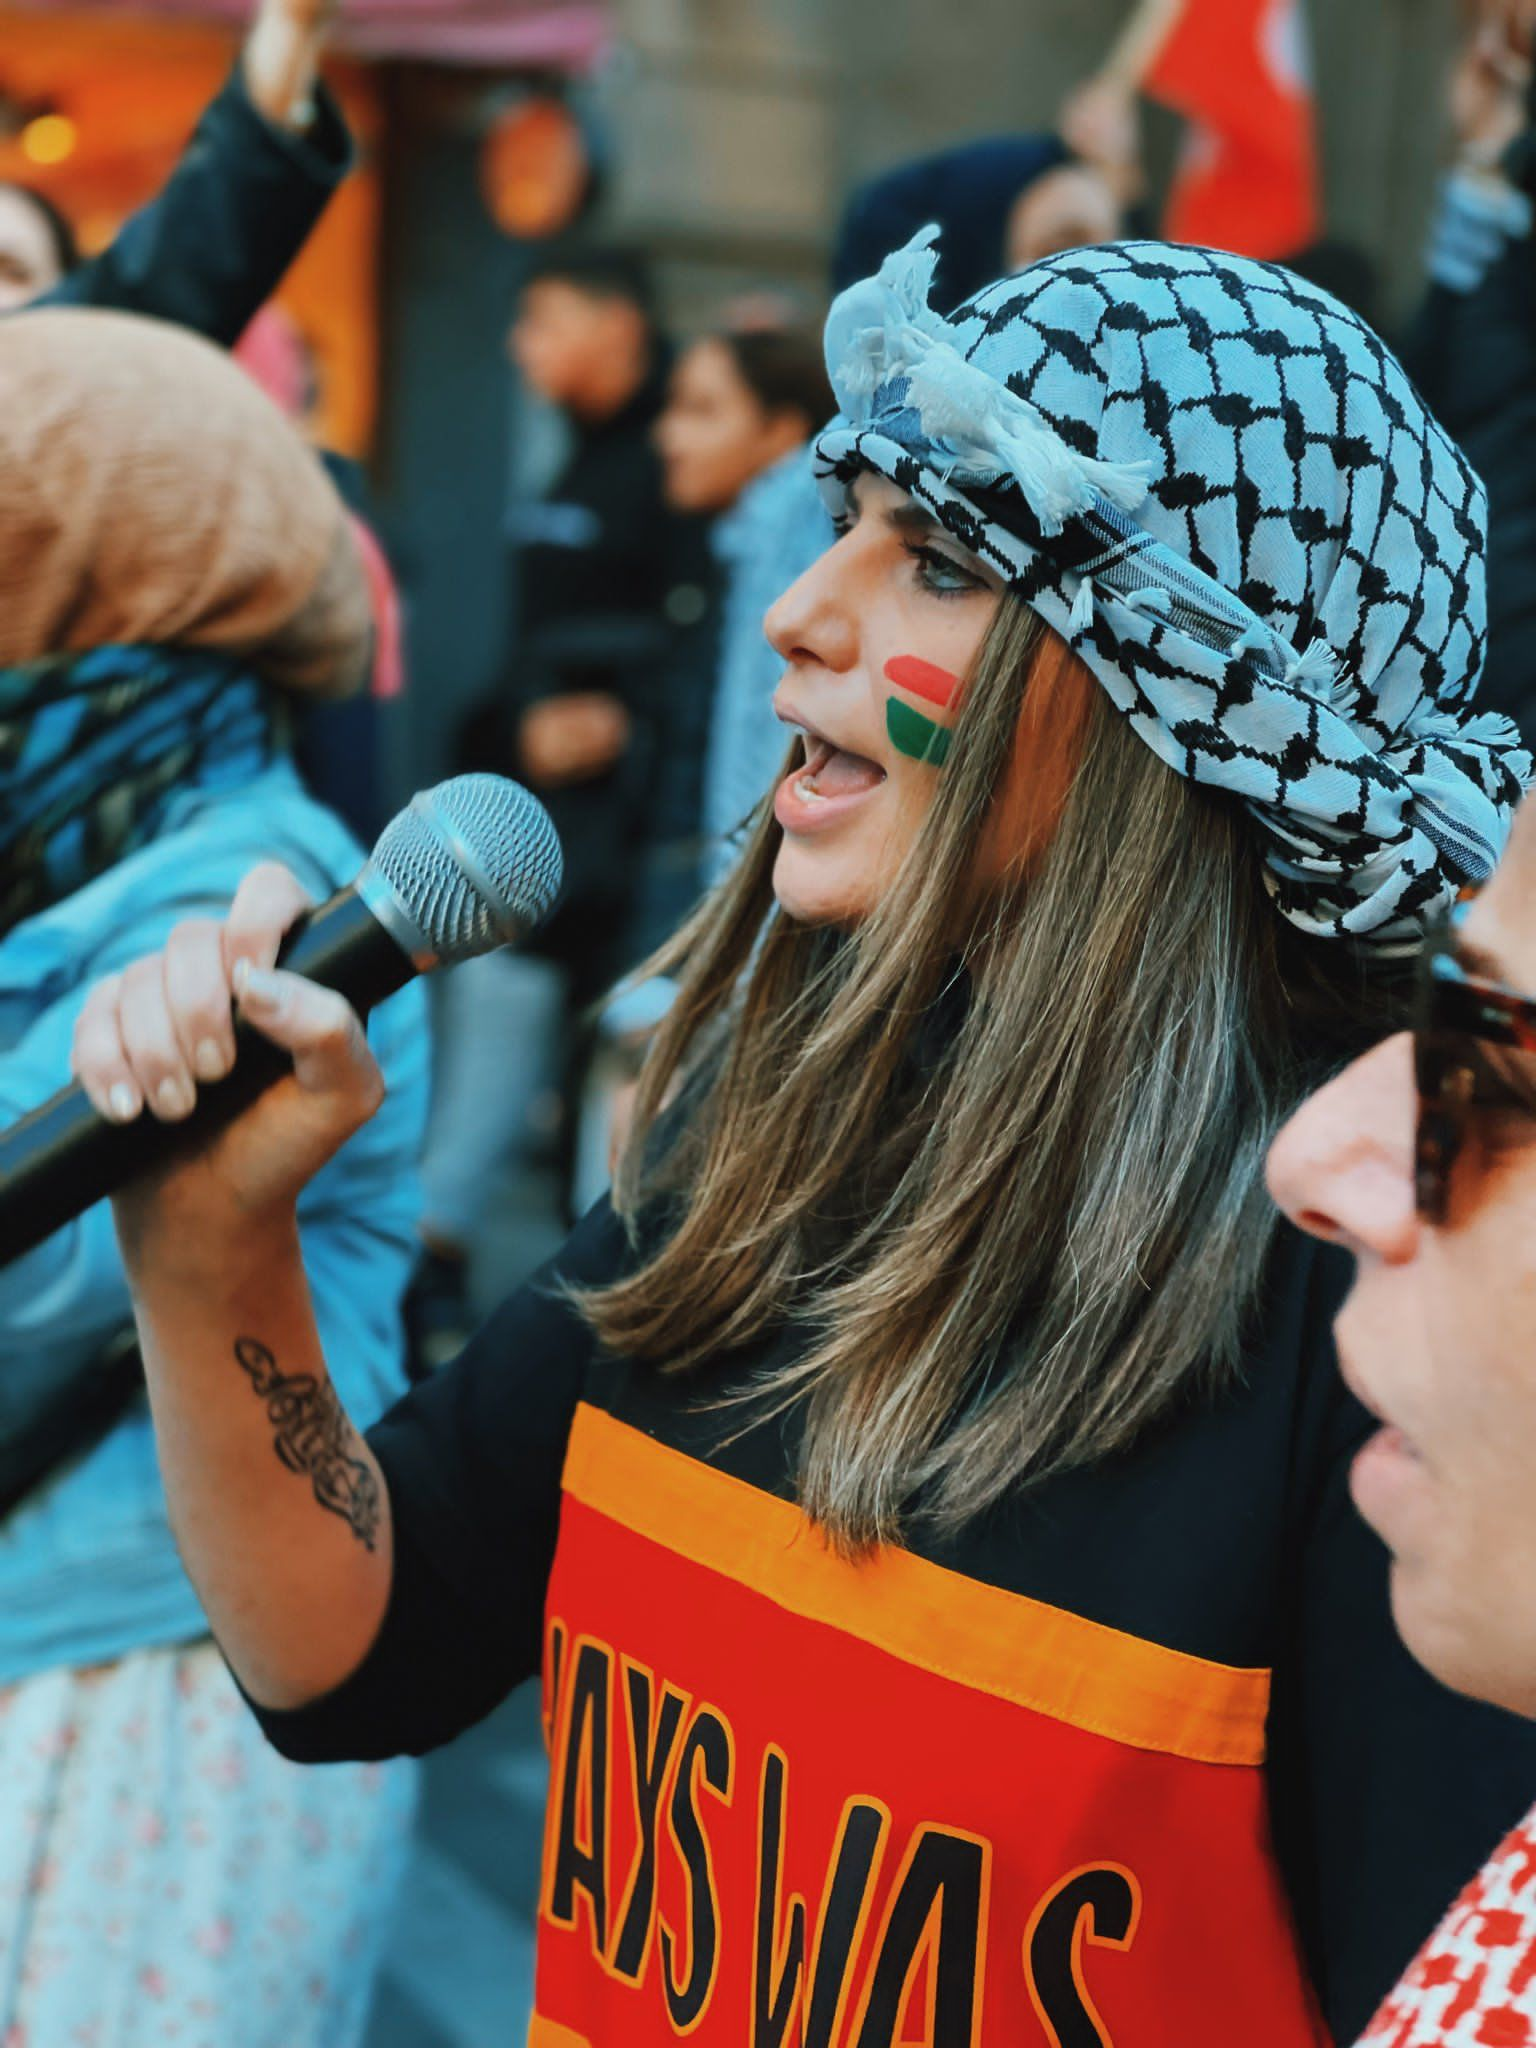 Palestinian activist, campaigner, and storyteller Jeanine Hourani speaks to a microphone at a protest. She is wearing a black and white kuffiyeh (كُوفِيَّة) with a black, yellow and red Always Was (Aboriginal land) sweater